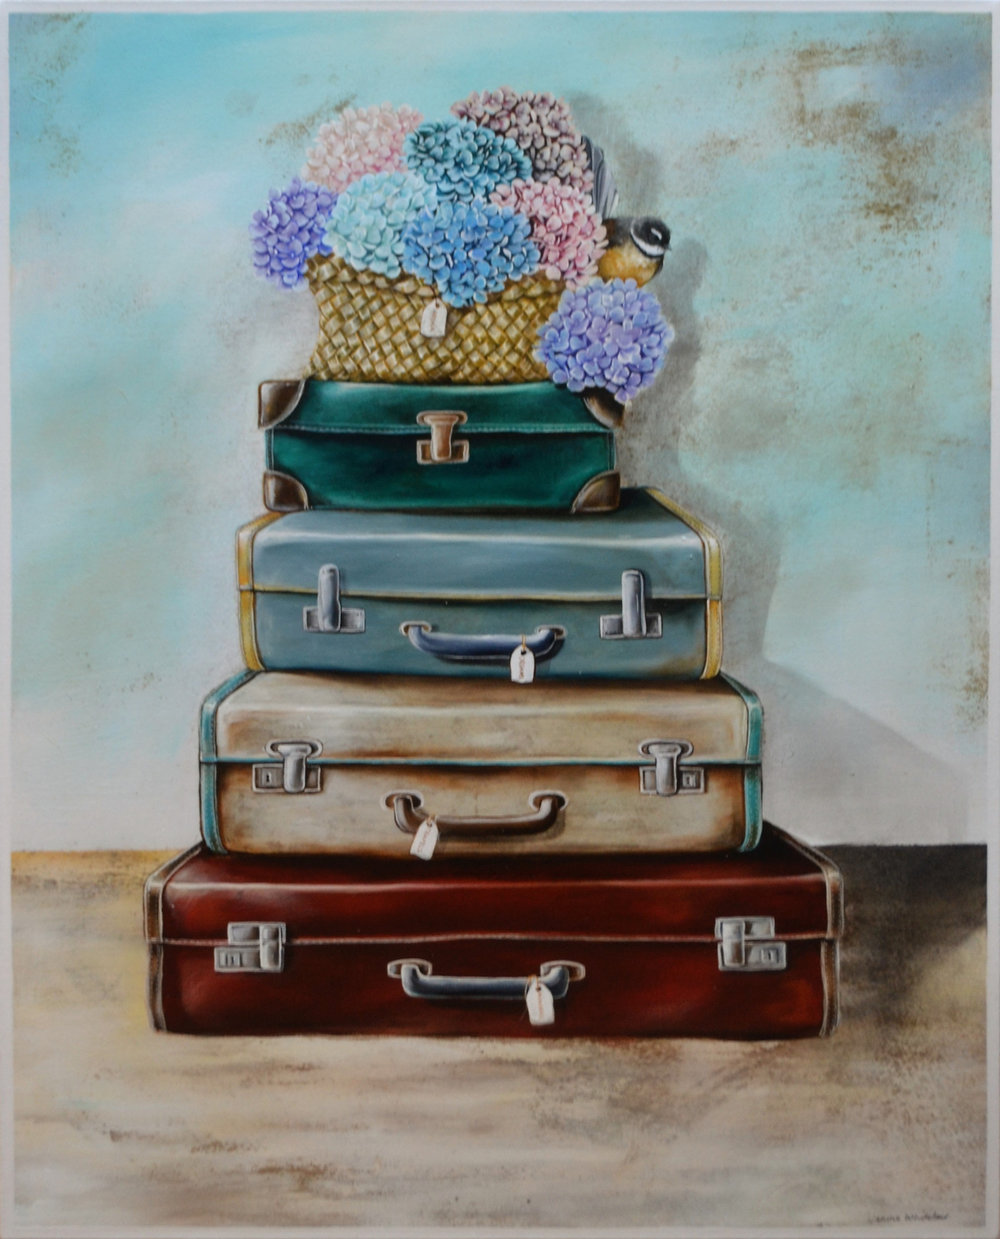 Four Suitcases, Treasured Memories Series  Janine Whitelaw, acrylic on canvas, 1000mm x 800mm  $1,990.00